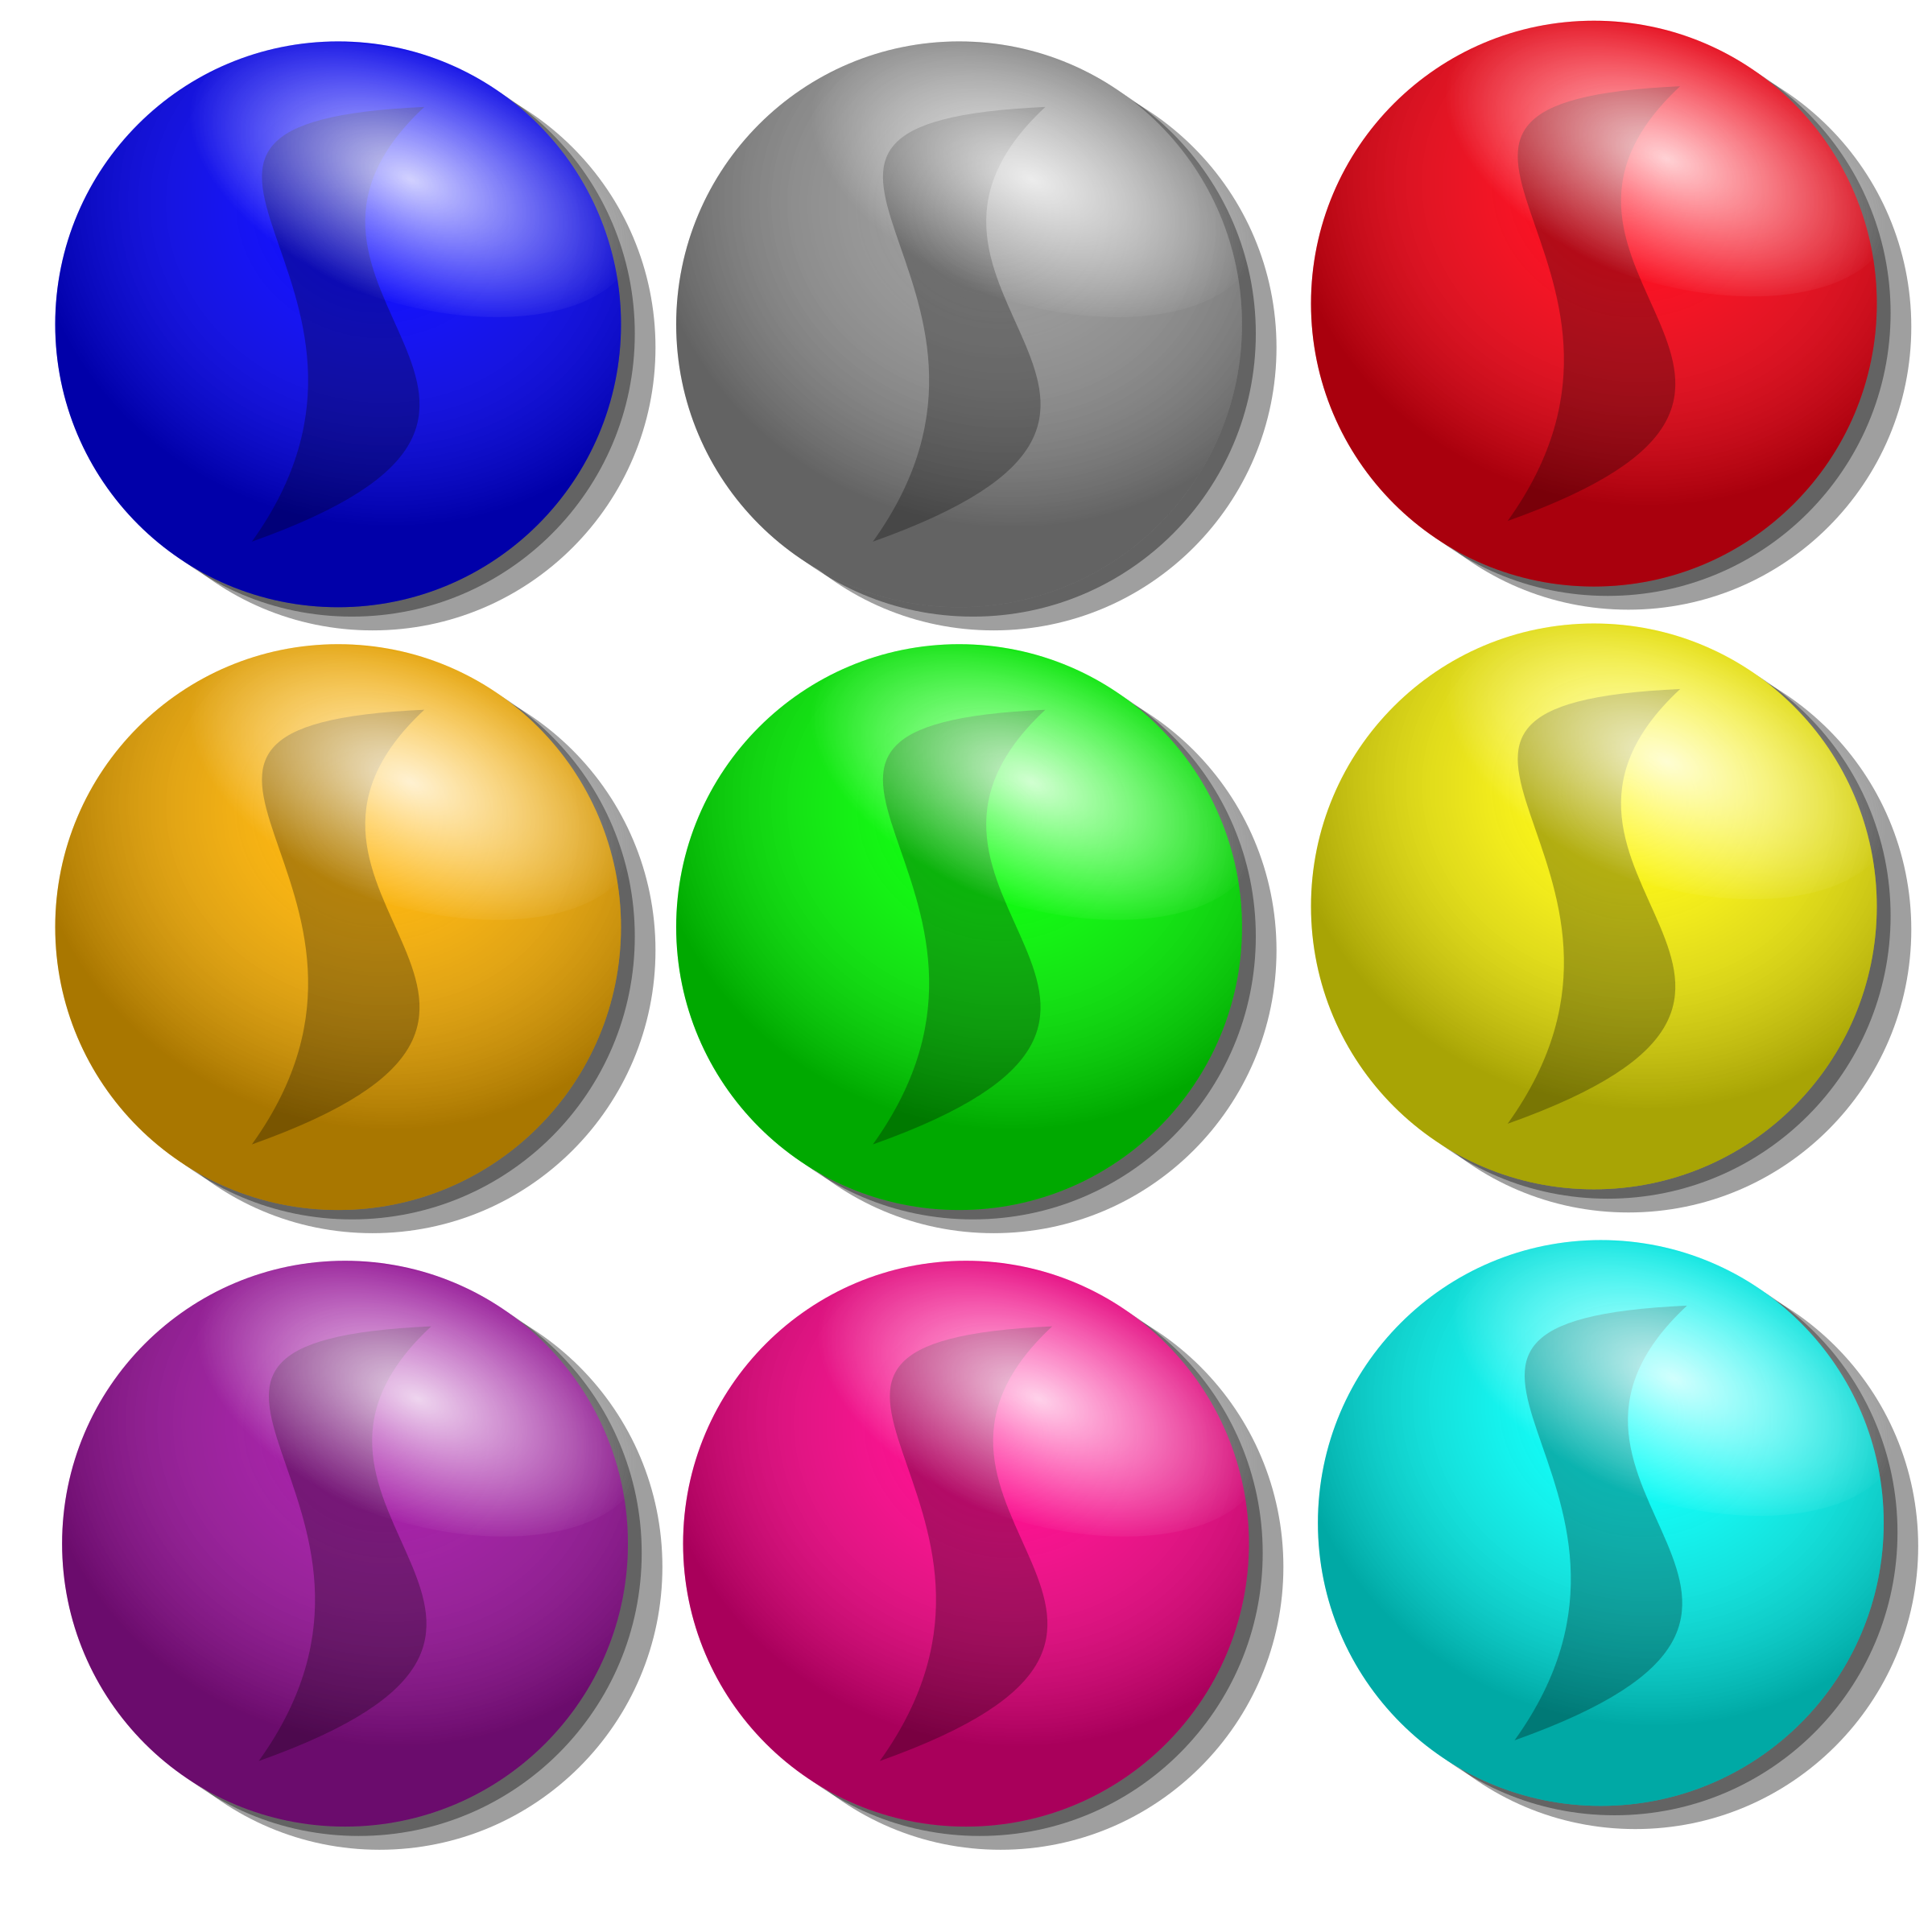 Colored dots png. Game marbles icons free